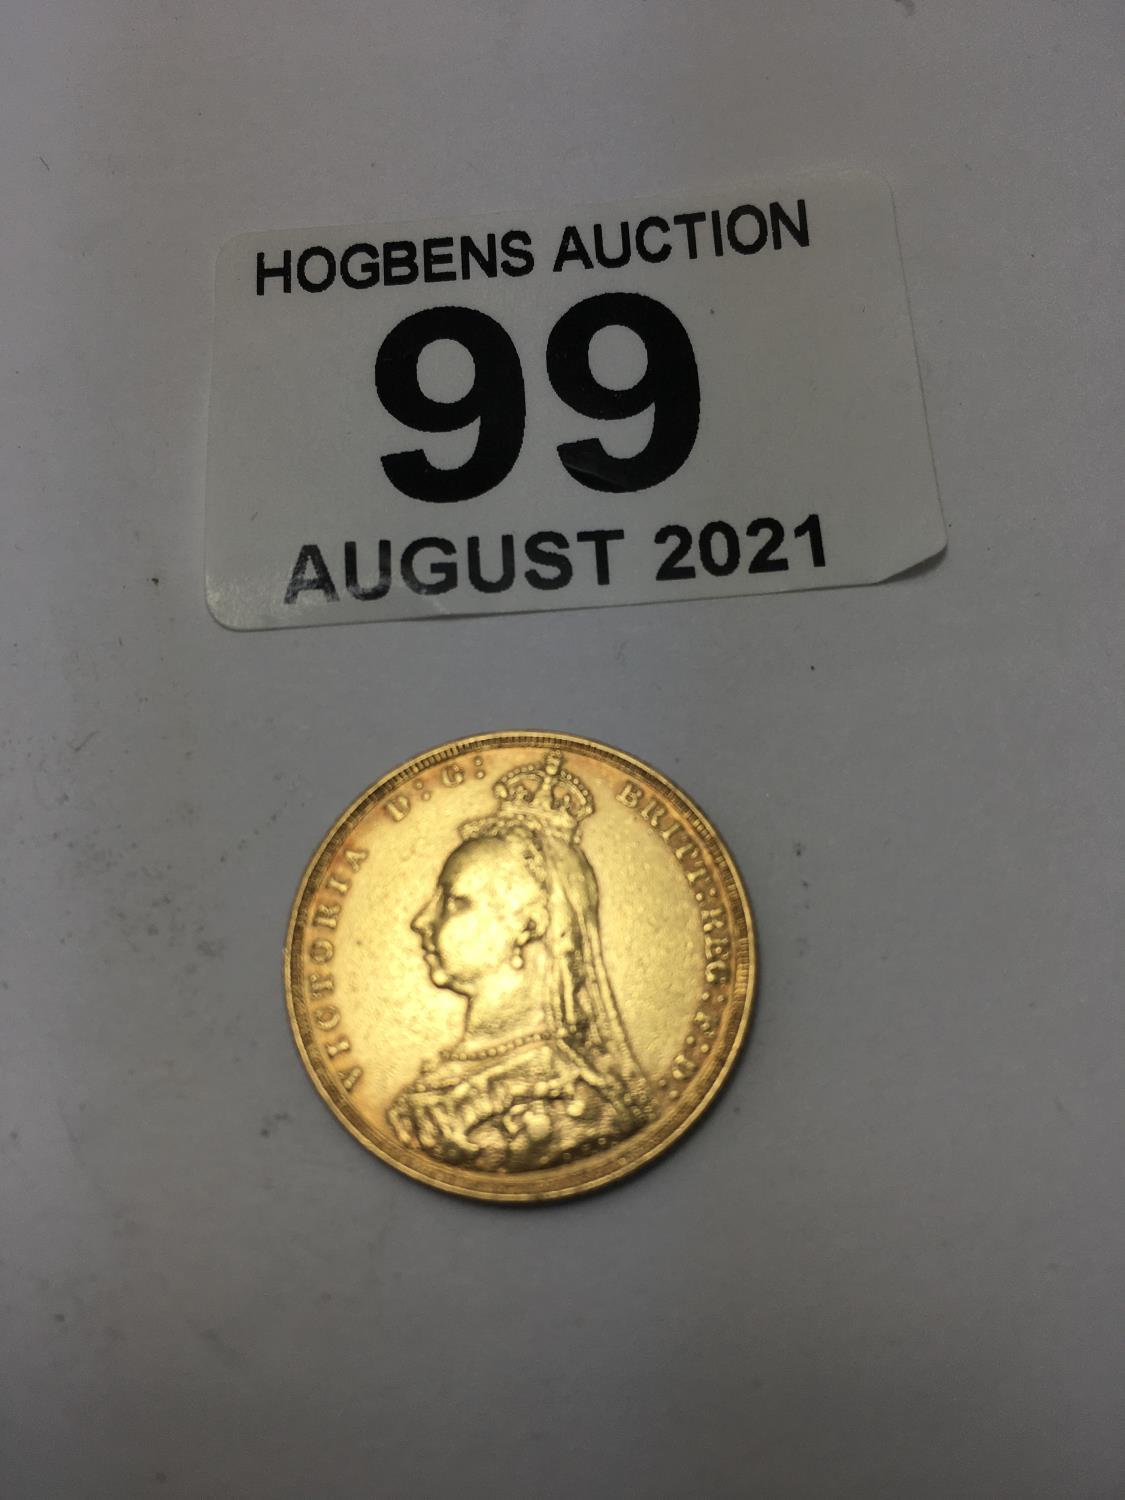 Full gold Victorian Sovereign, dated 1890 good condition - Image 2 of 2